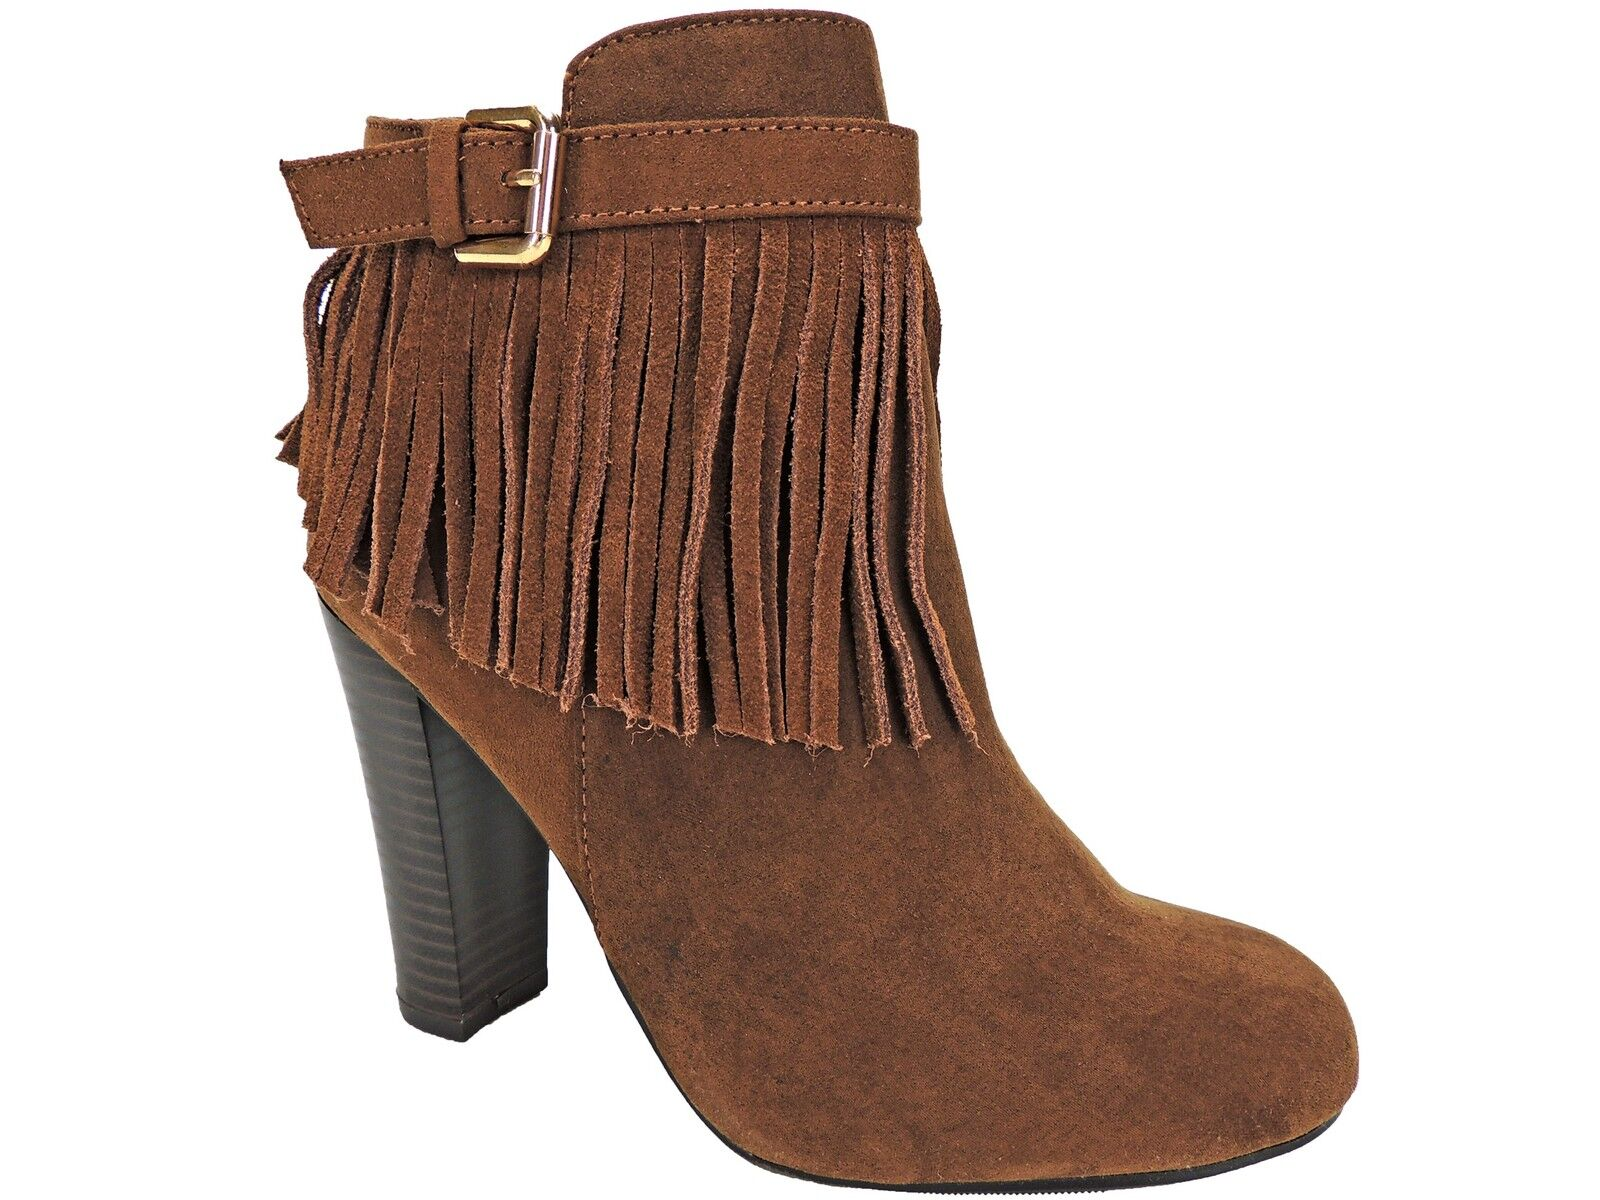 Material Girl Women's Persia Fringe Dress Boots - Booties Cognac Size 5.5 M